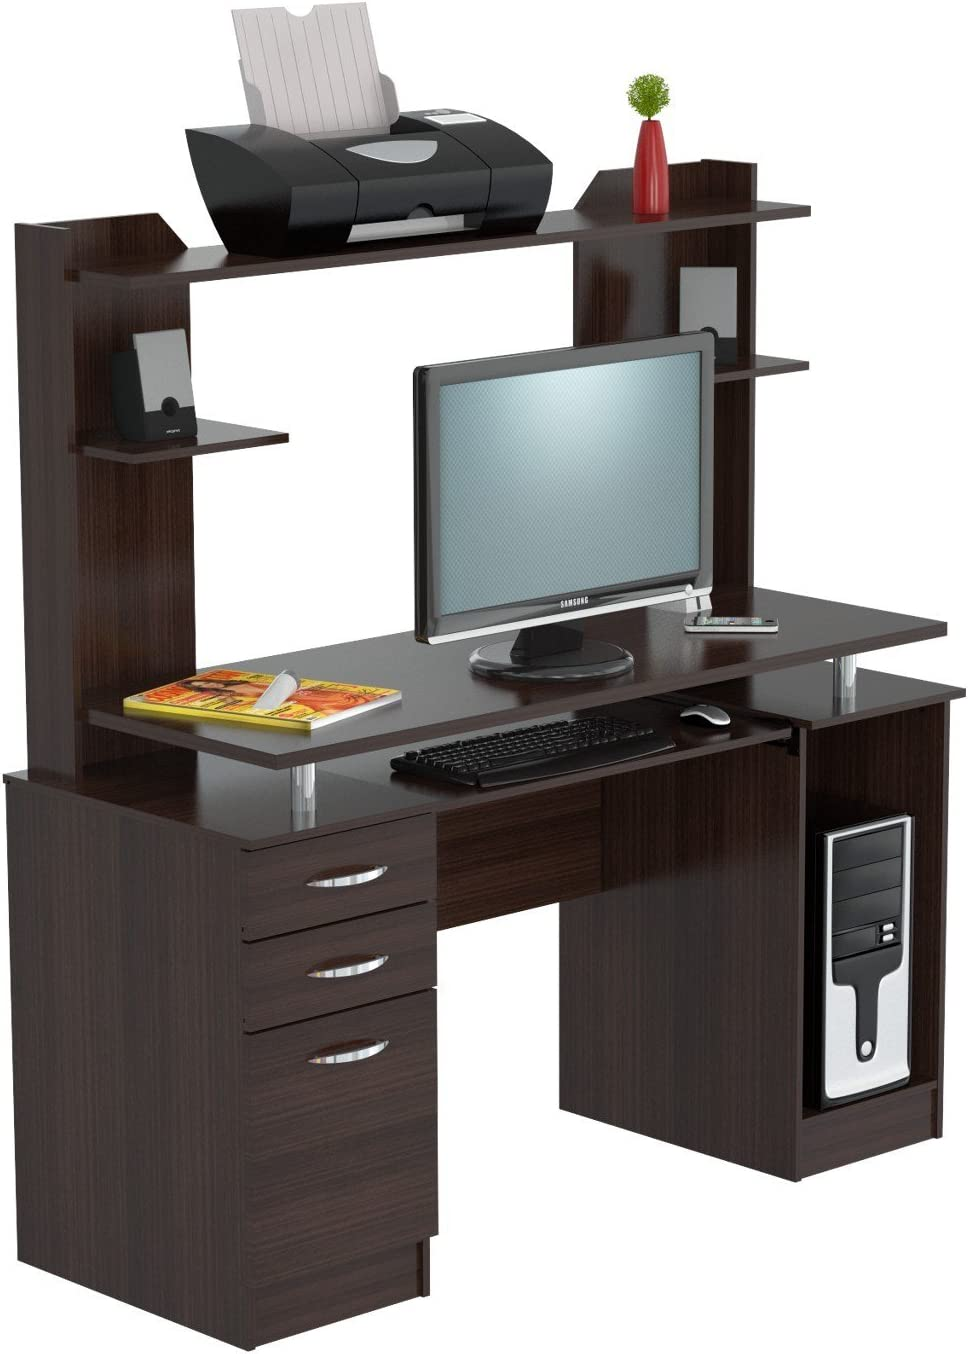 Our shop most popular Inval America Computer Workcenter Hutch With Espresso Ranking TOP15